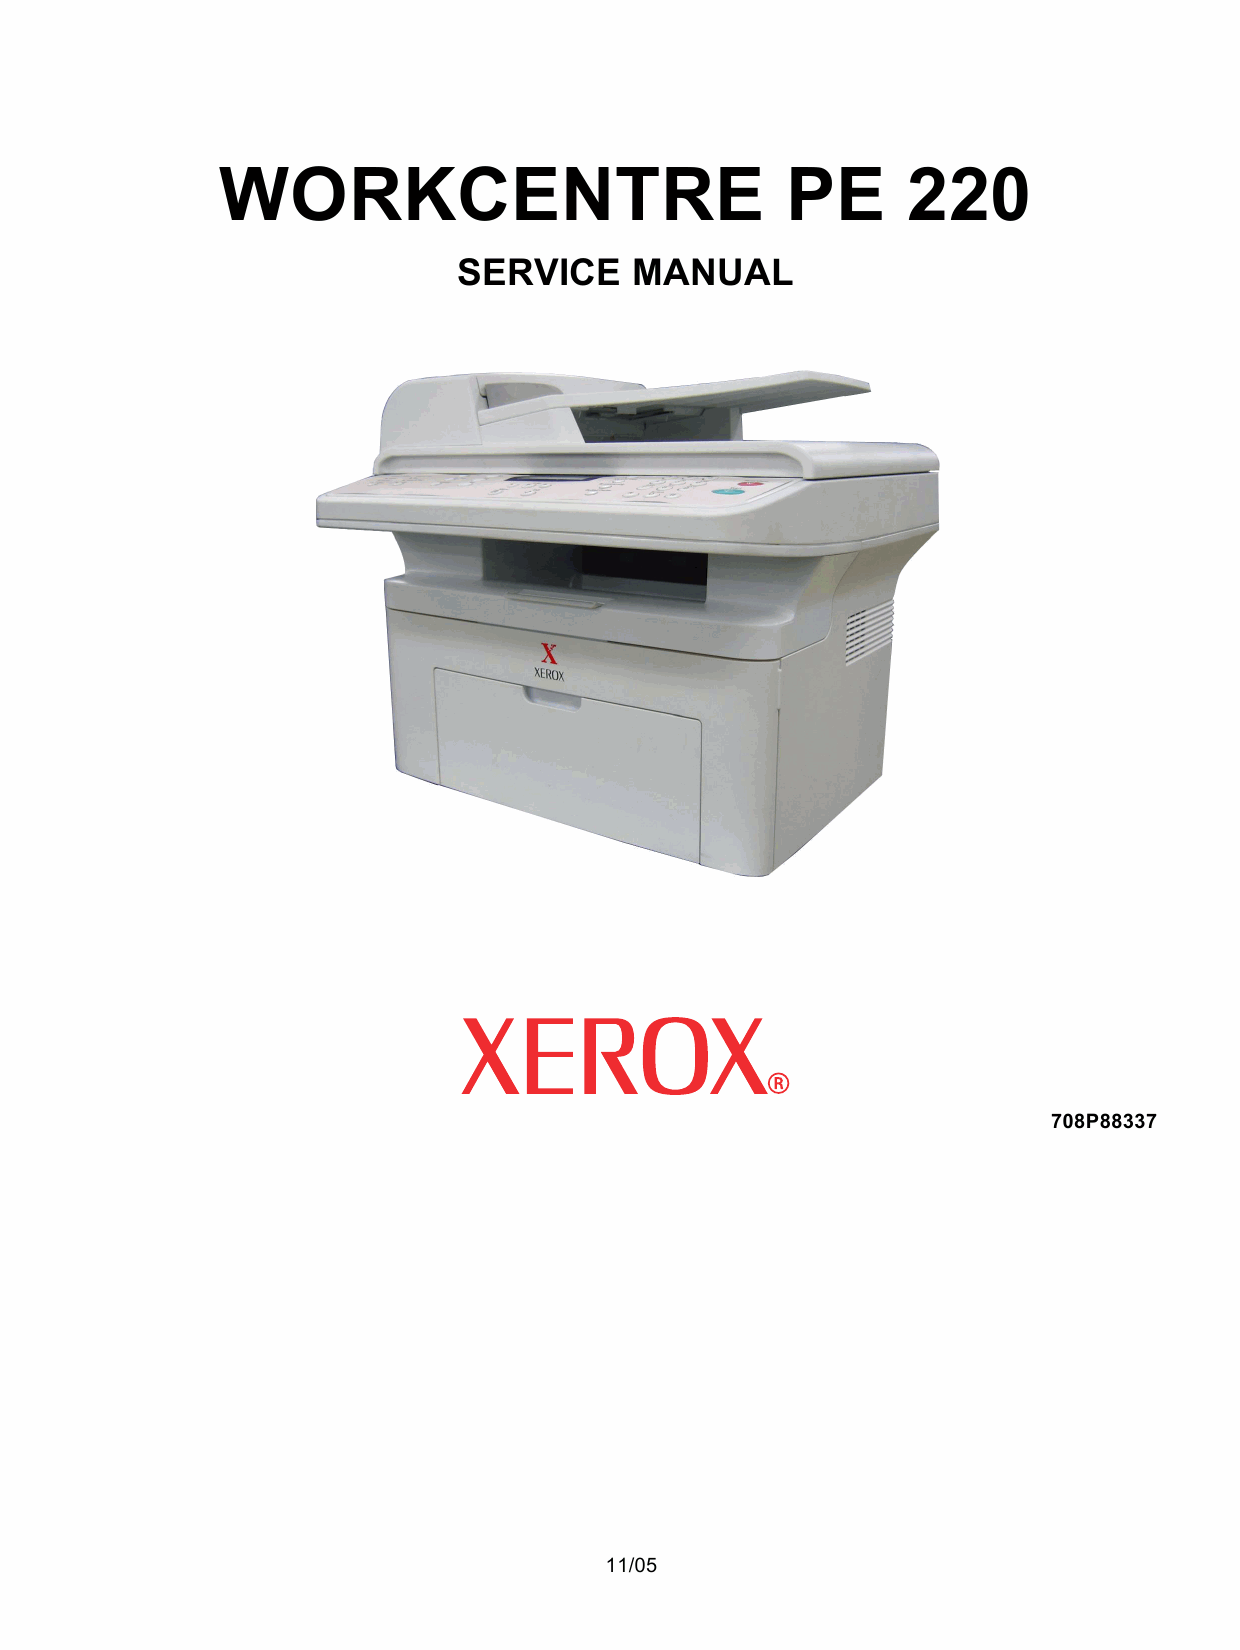 Xerox WorkCentre PE-220 Parts List and Service Manual-1